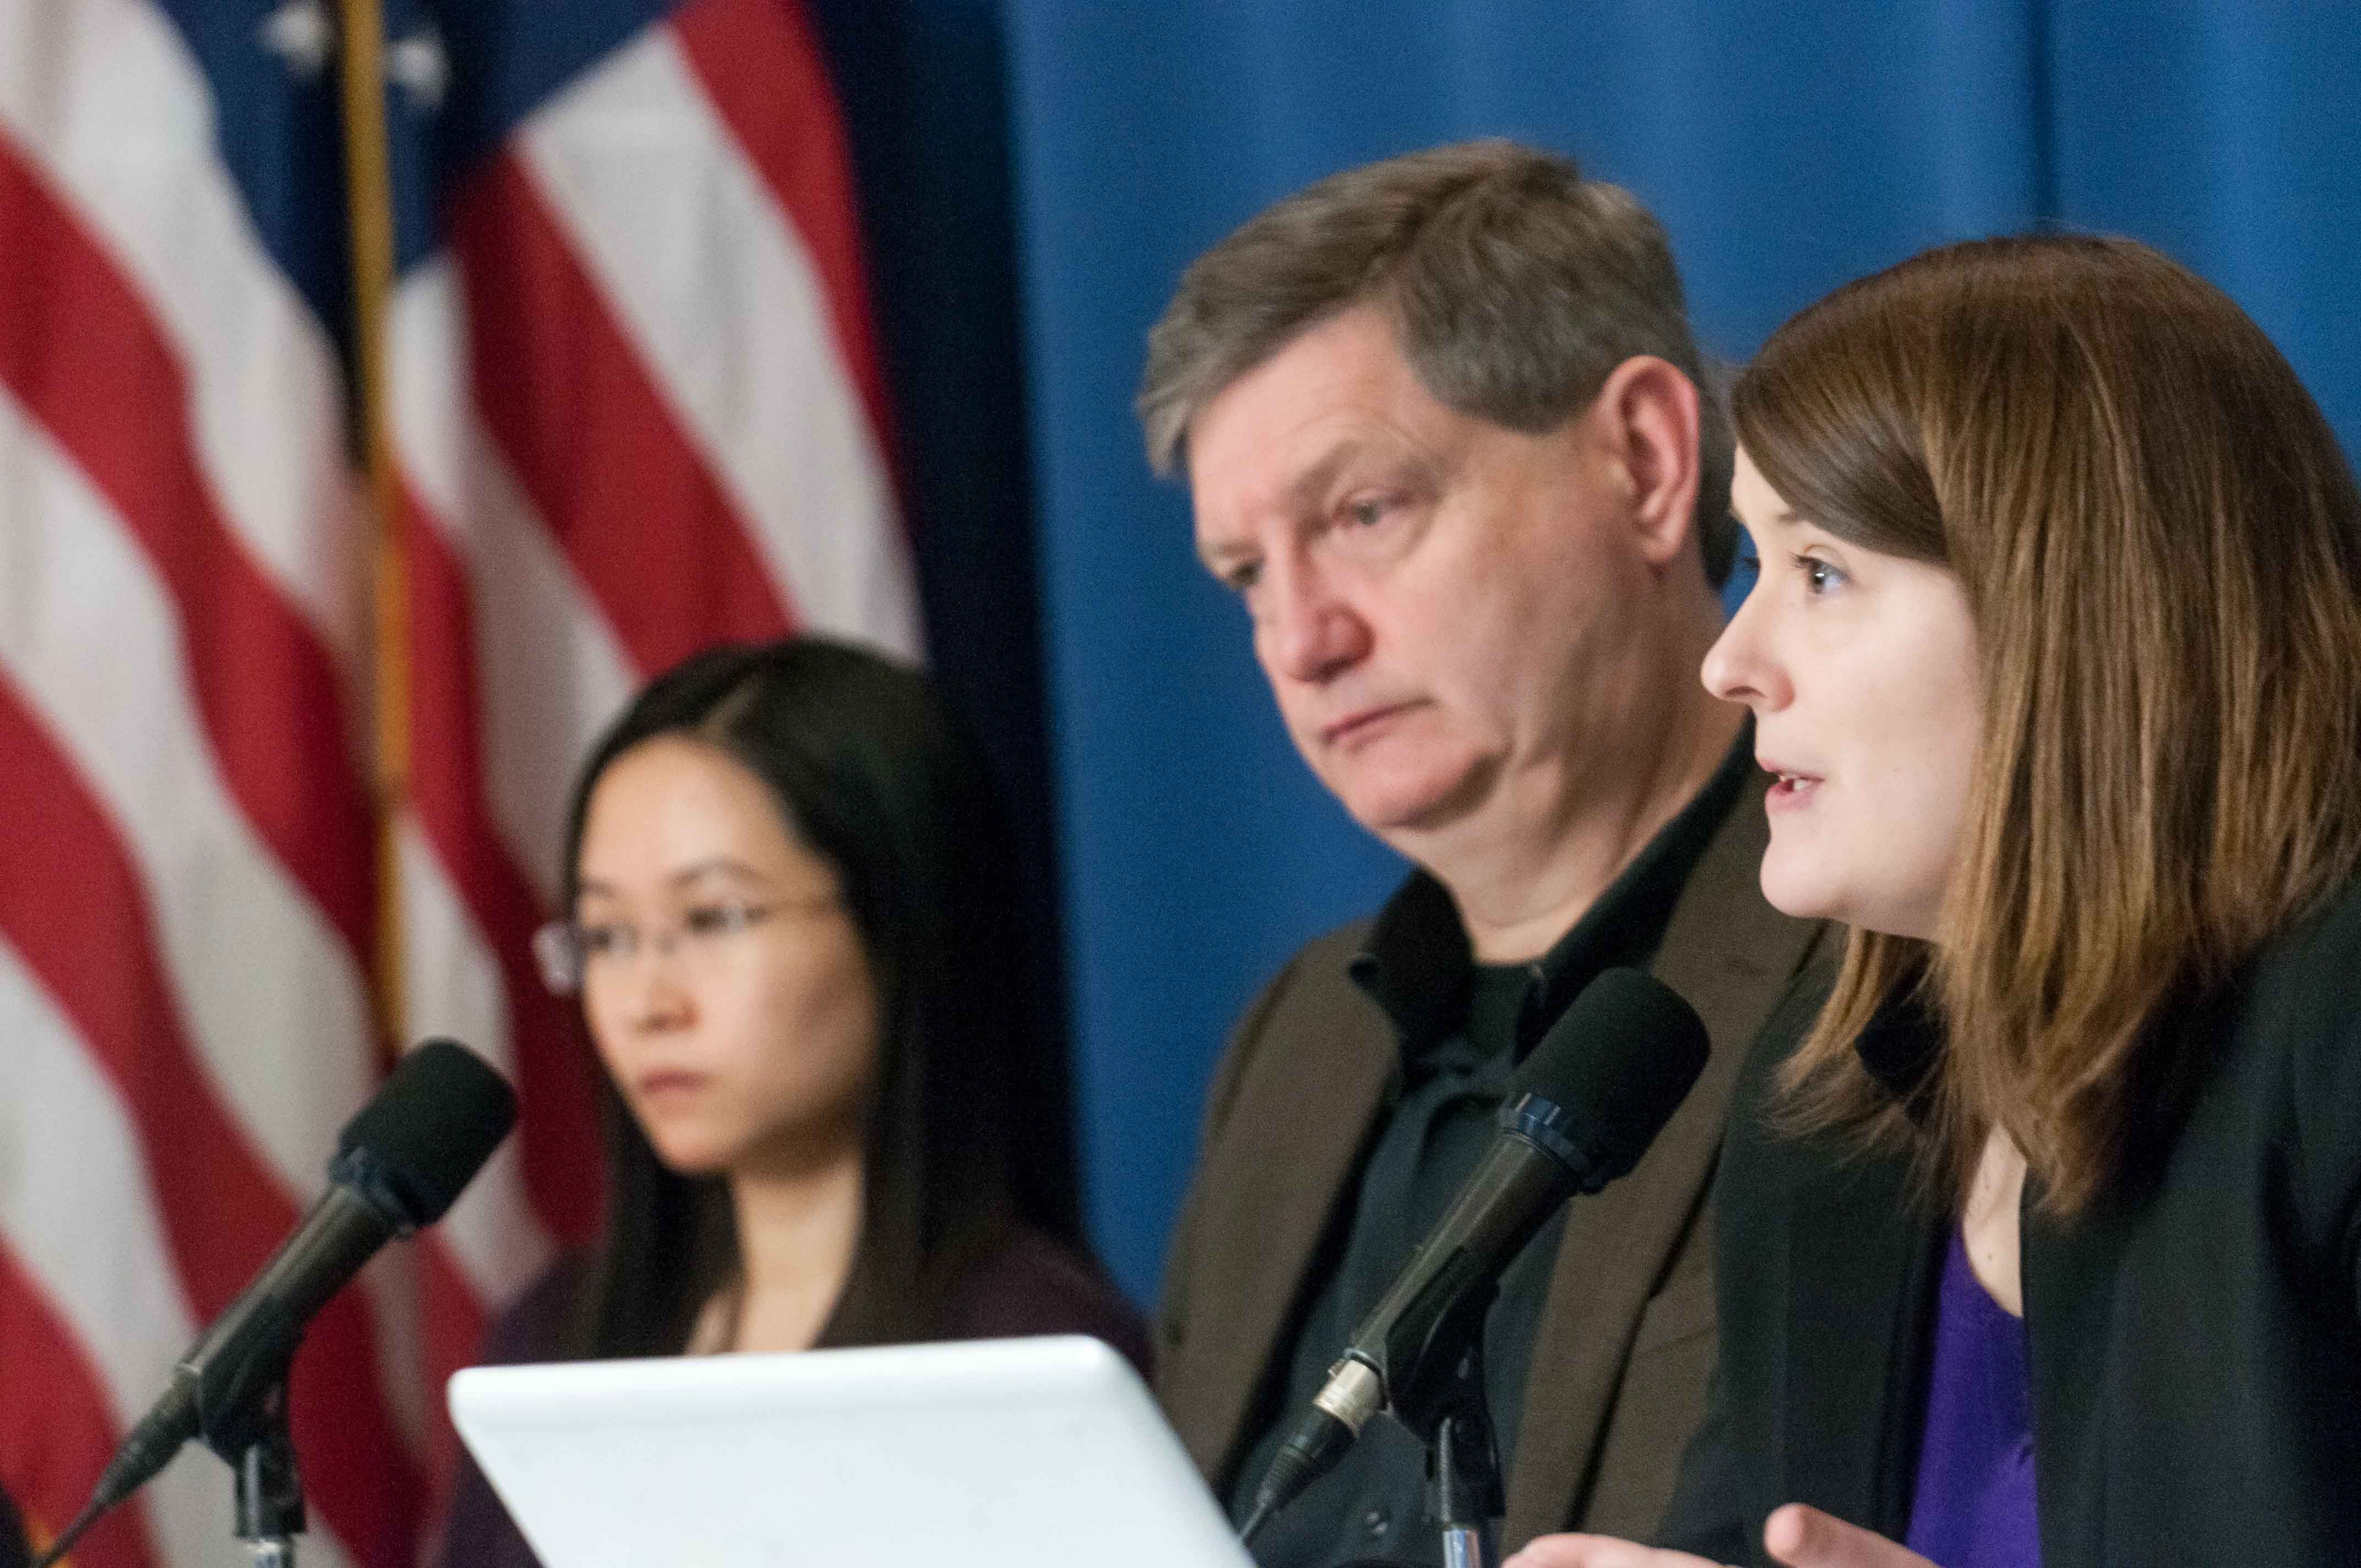 James Risen, Delphine Halgand Reporters Without Borders